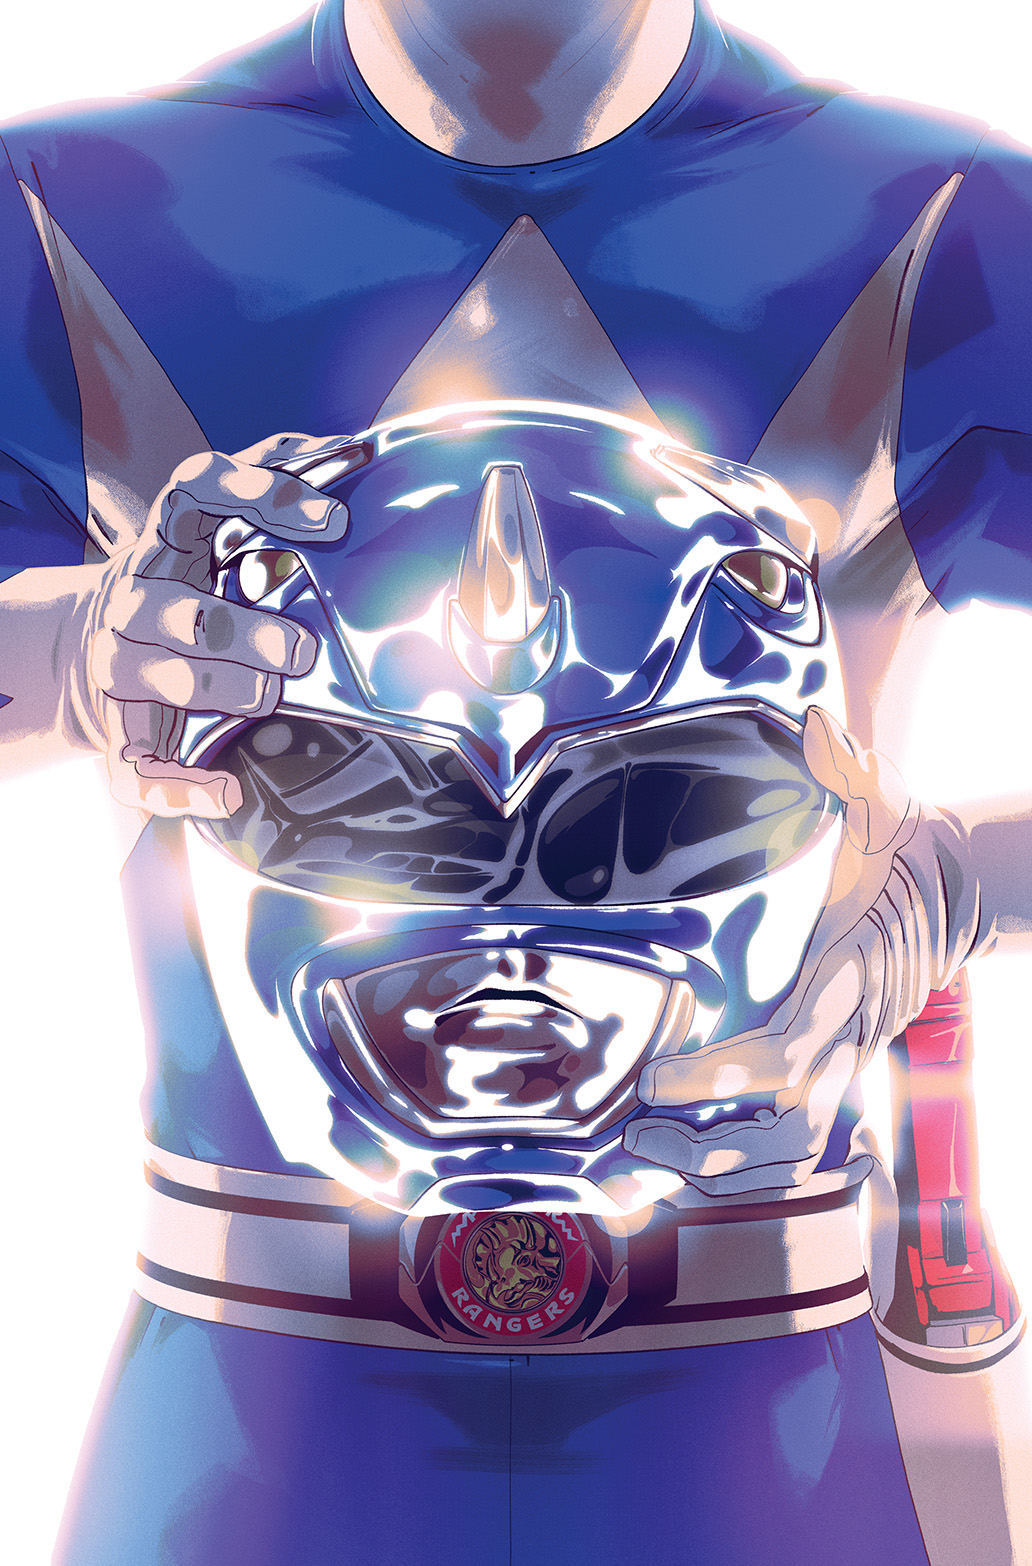 Blur clipart power ranger BOOM_MightyMorphinPowerRangers_000_Blue  BOOM_MightyMorphinPowerRangers_000_Black Mighty January